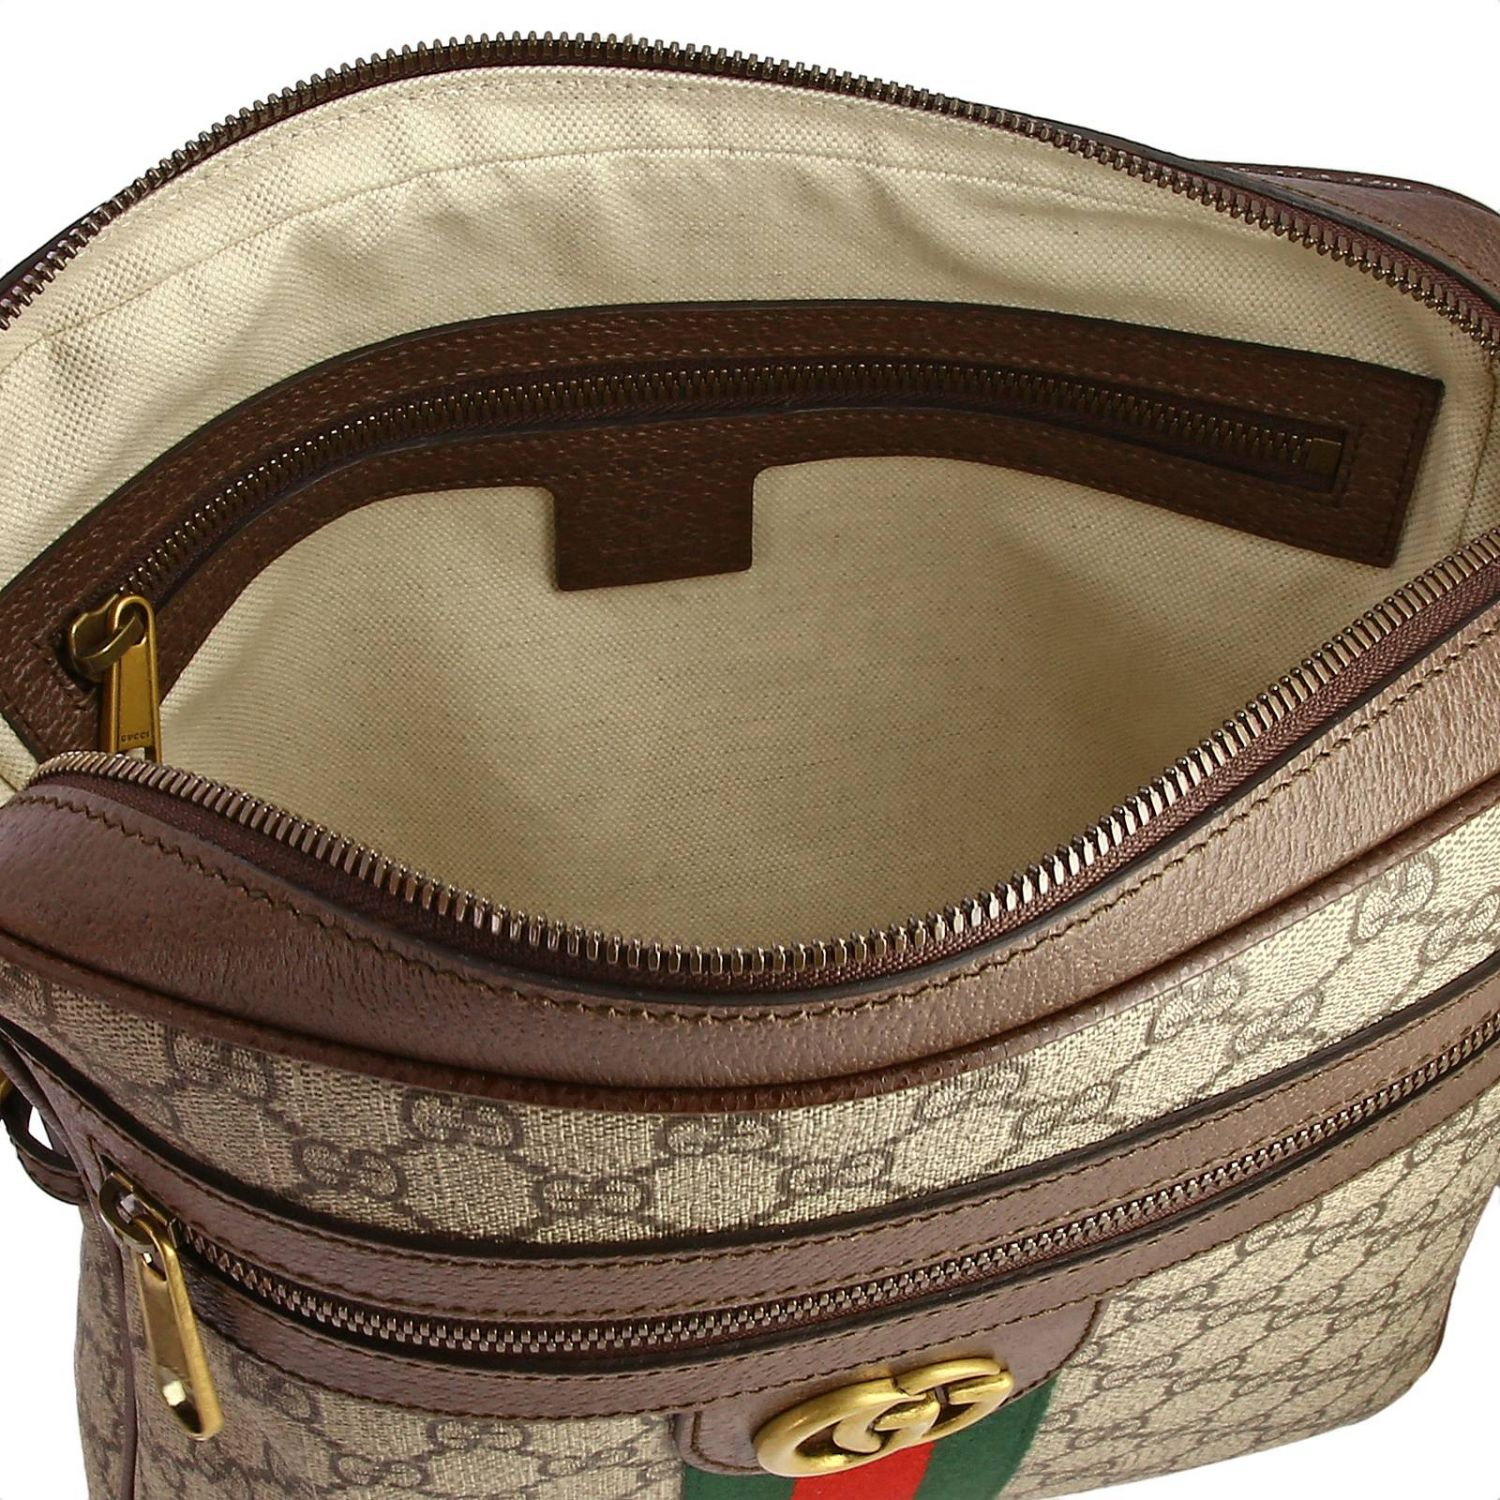 Ophidia shoulder bag in GG Supreme Gucci leather with Web band beige 5